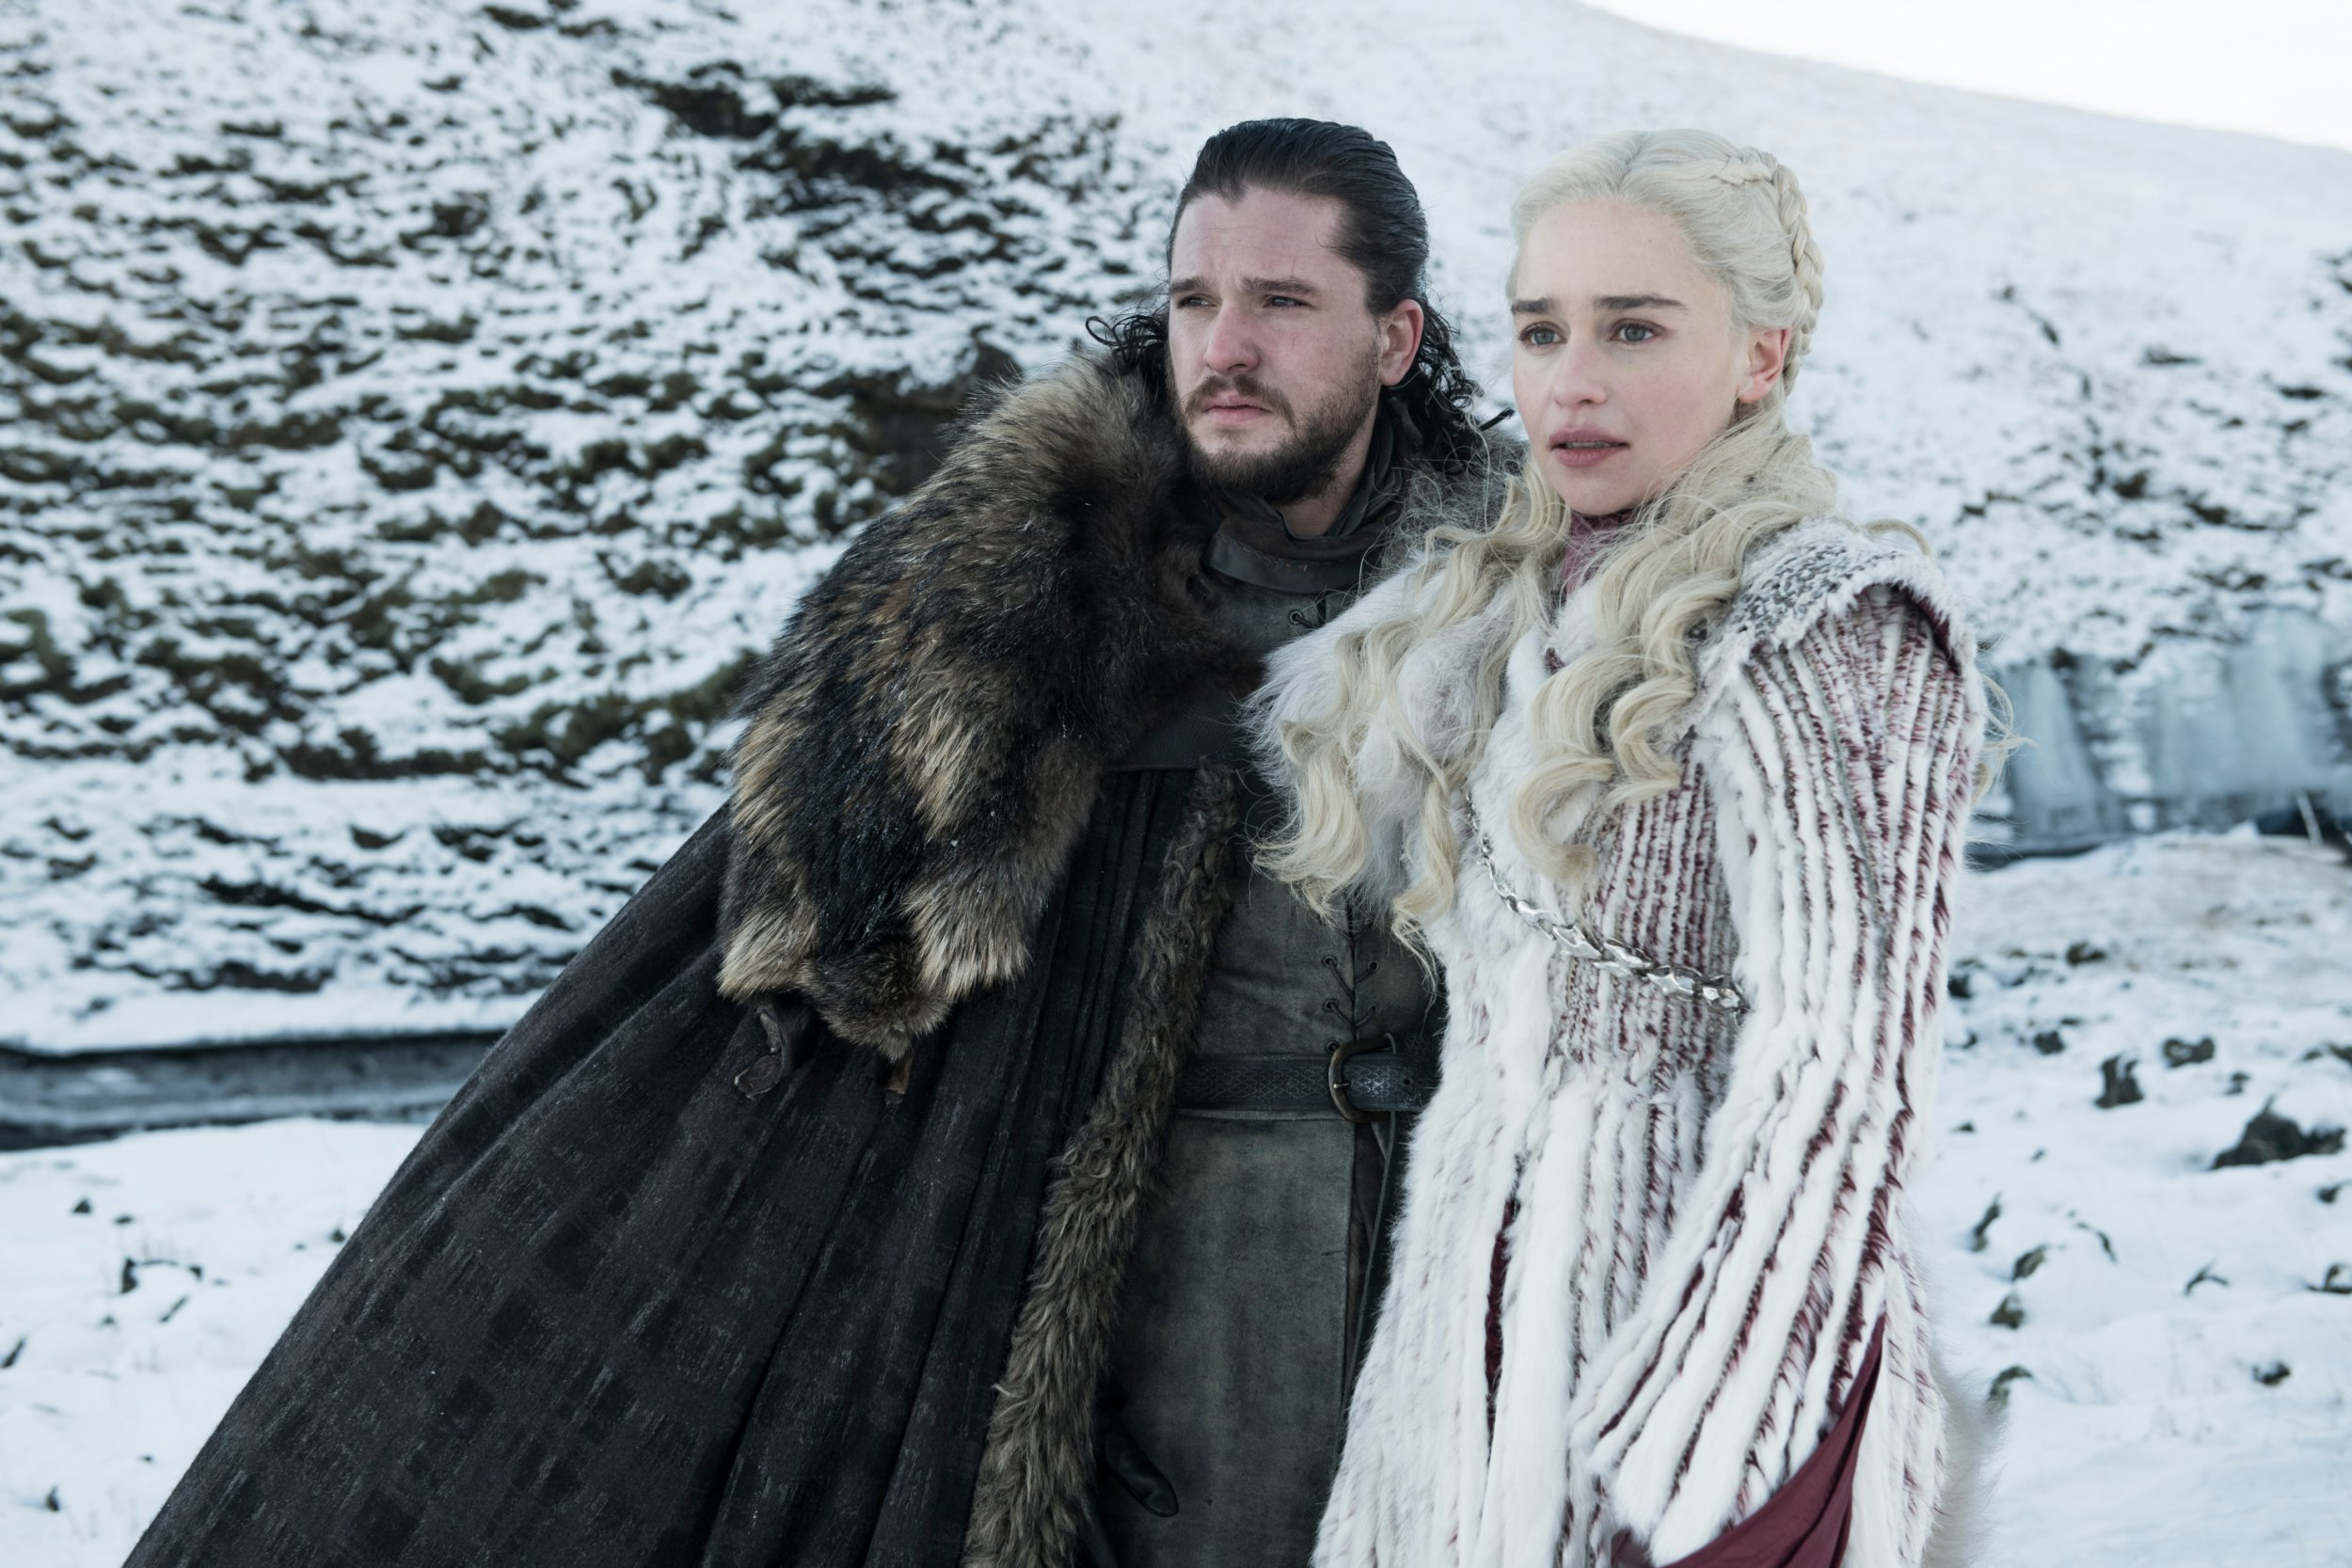 New Game Of Thrones season 8 cast members – everything we know so far